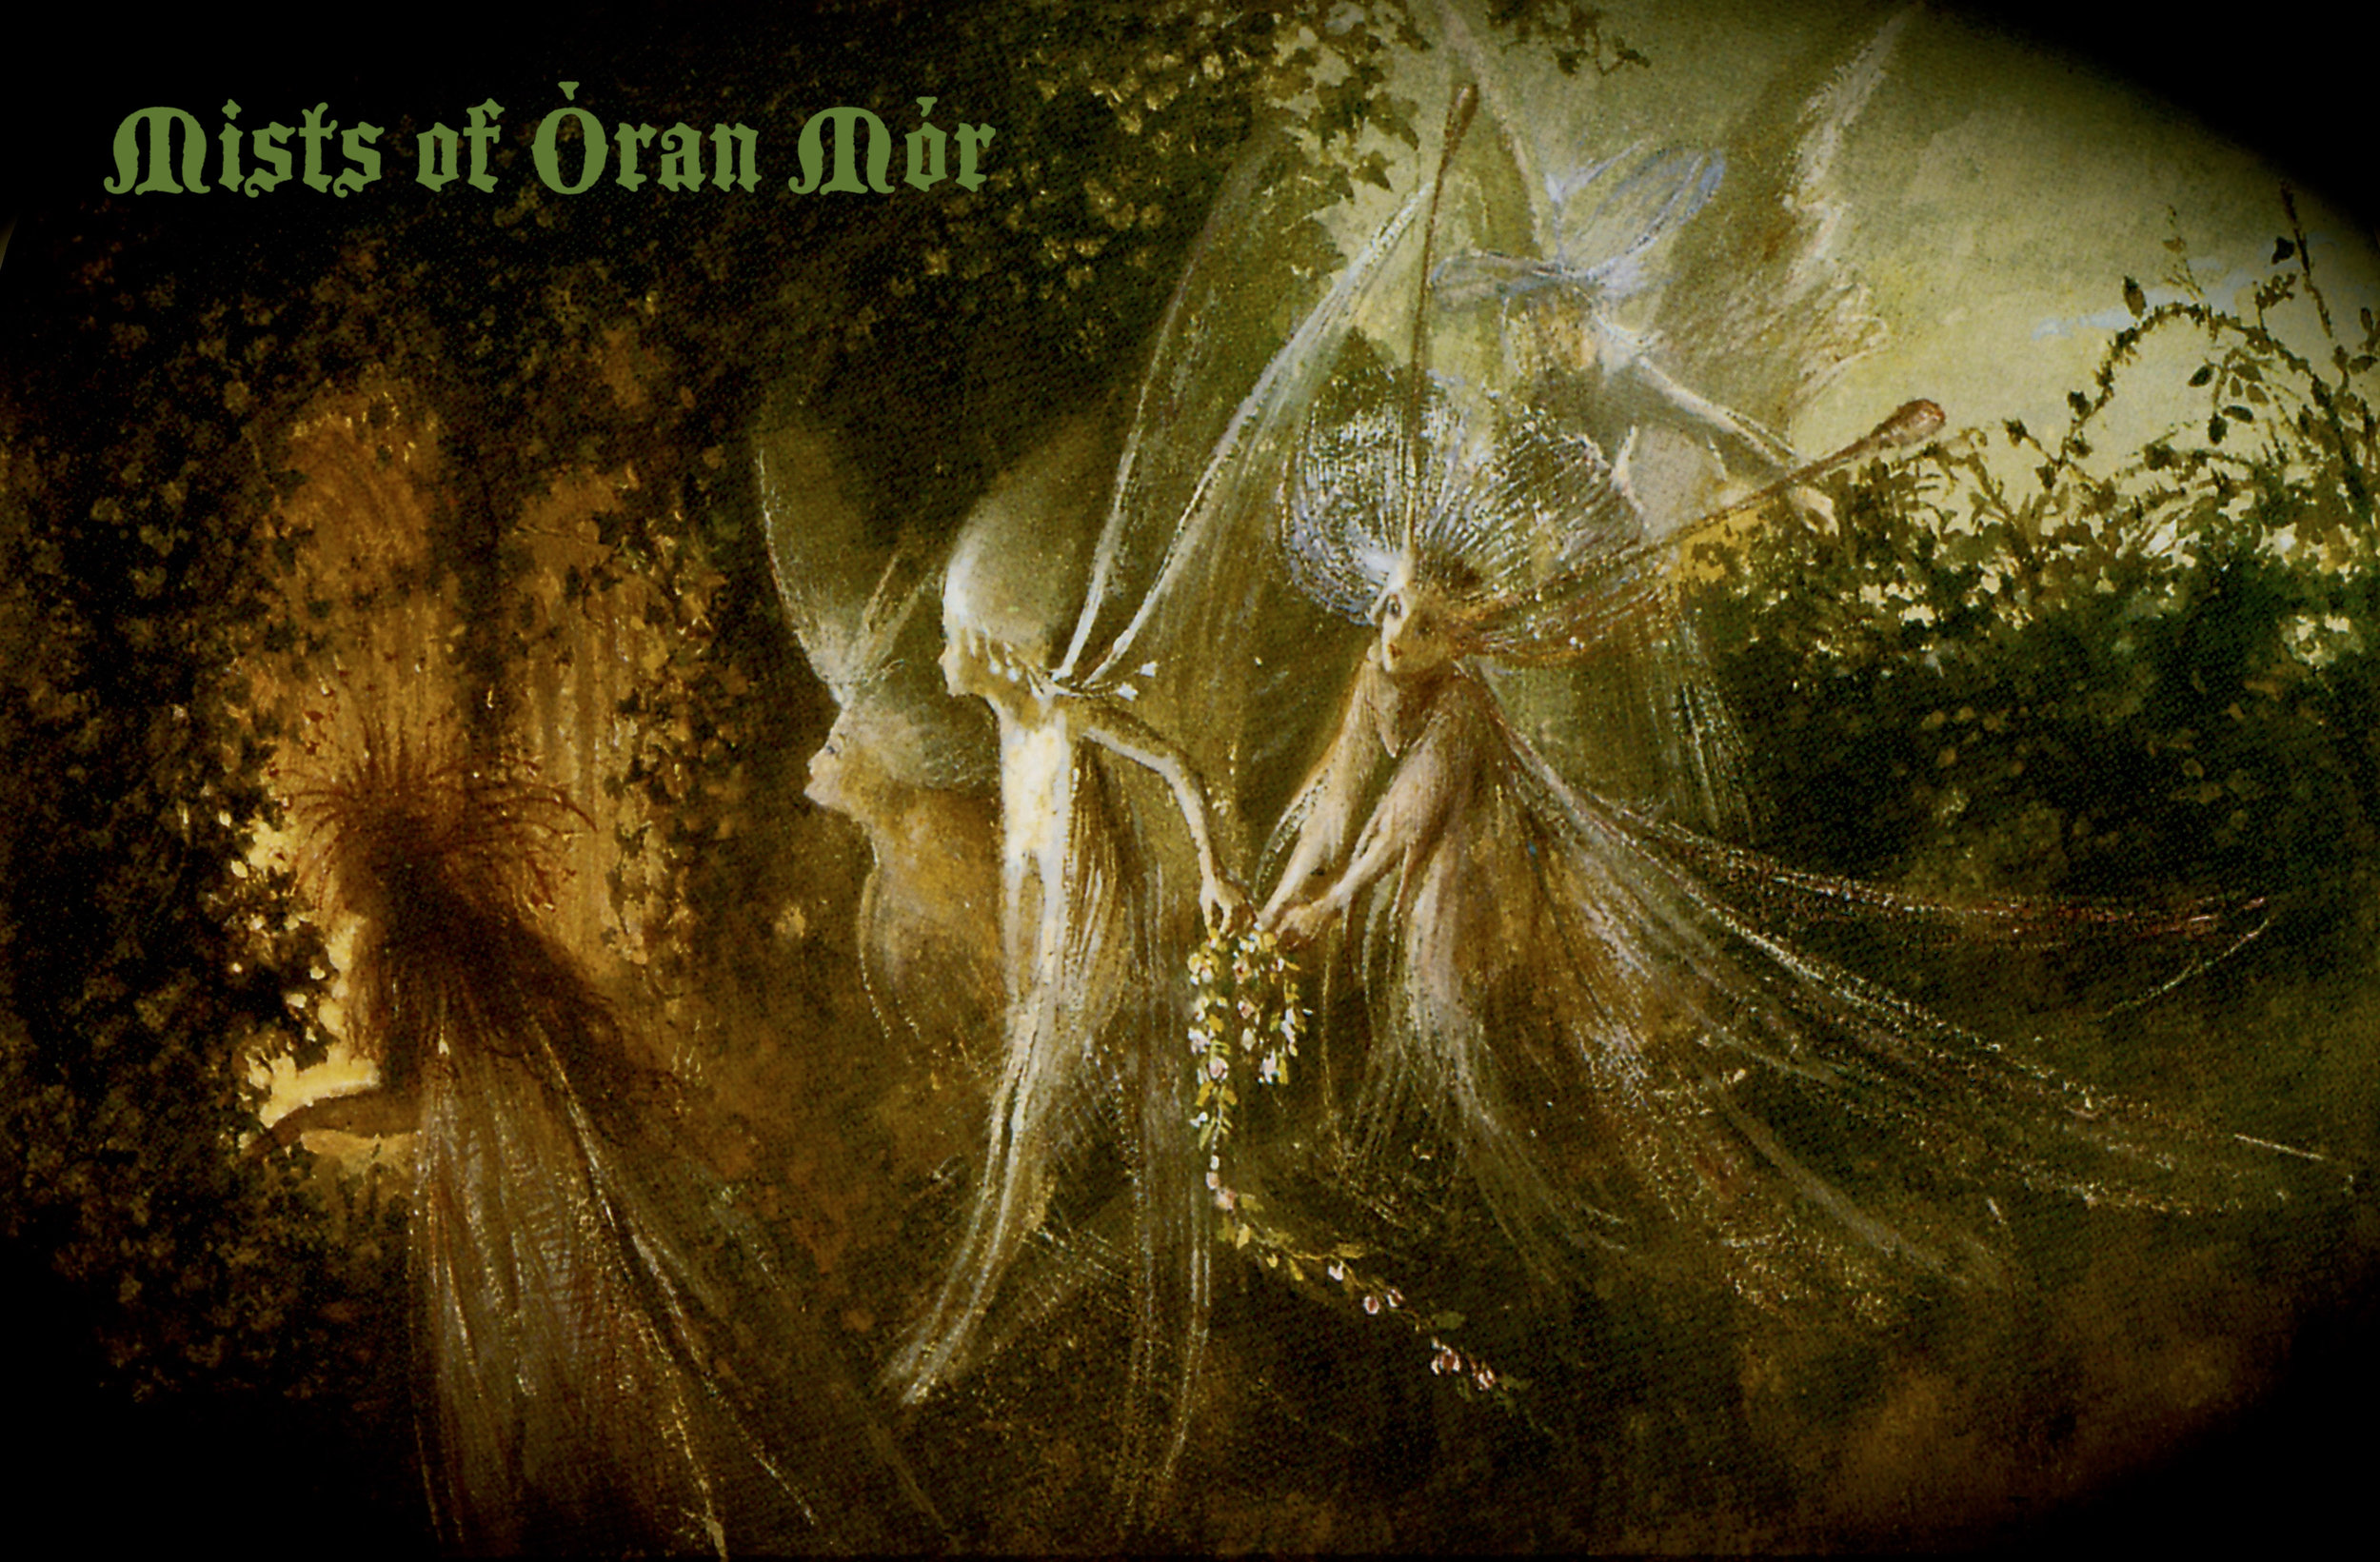 """Dennis & Yumi - Mystical ambiance and fae magick awaits you as you travel into the Faerielands.The Òran Mór is the Great Song of the Cosmos, the energy that suffuses all things, the living flow of All That Is. As we gather on this night, the rhythms of Faërie drumming and the music of crystal and Tibetan bowls, bells, chimes and drums thin the veils between the worlds for deep inner healing and communion with innerworld allies...Dennis George Rudolph is a Faërie Initiate who has been working (and playing) directly with the Otherworlds for more than three decades. He currently works as an intuitive consultant at Alexandria II in Pasadena, CA and at Waking Universe in Upland, CA. Pinoko (Yumiko) is the founder of Iyashirochi Sound Resonance, leading ambient musical and energetic healing experiences for individuals and groups. (""""Iyashirochi"""" means """"Sacred Place"""" in Japanese.) Her sound moves people toward inner peace."""